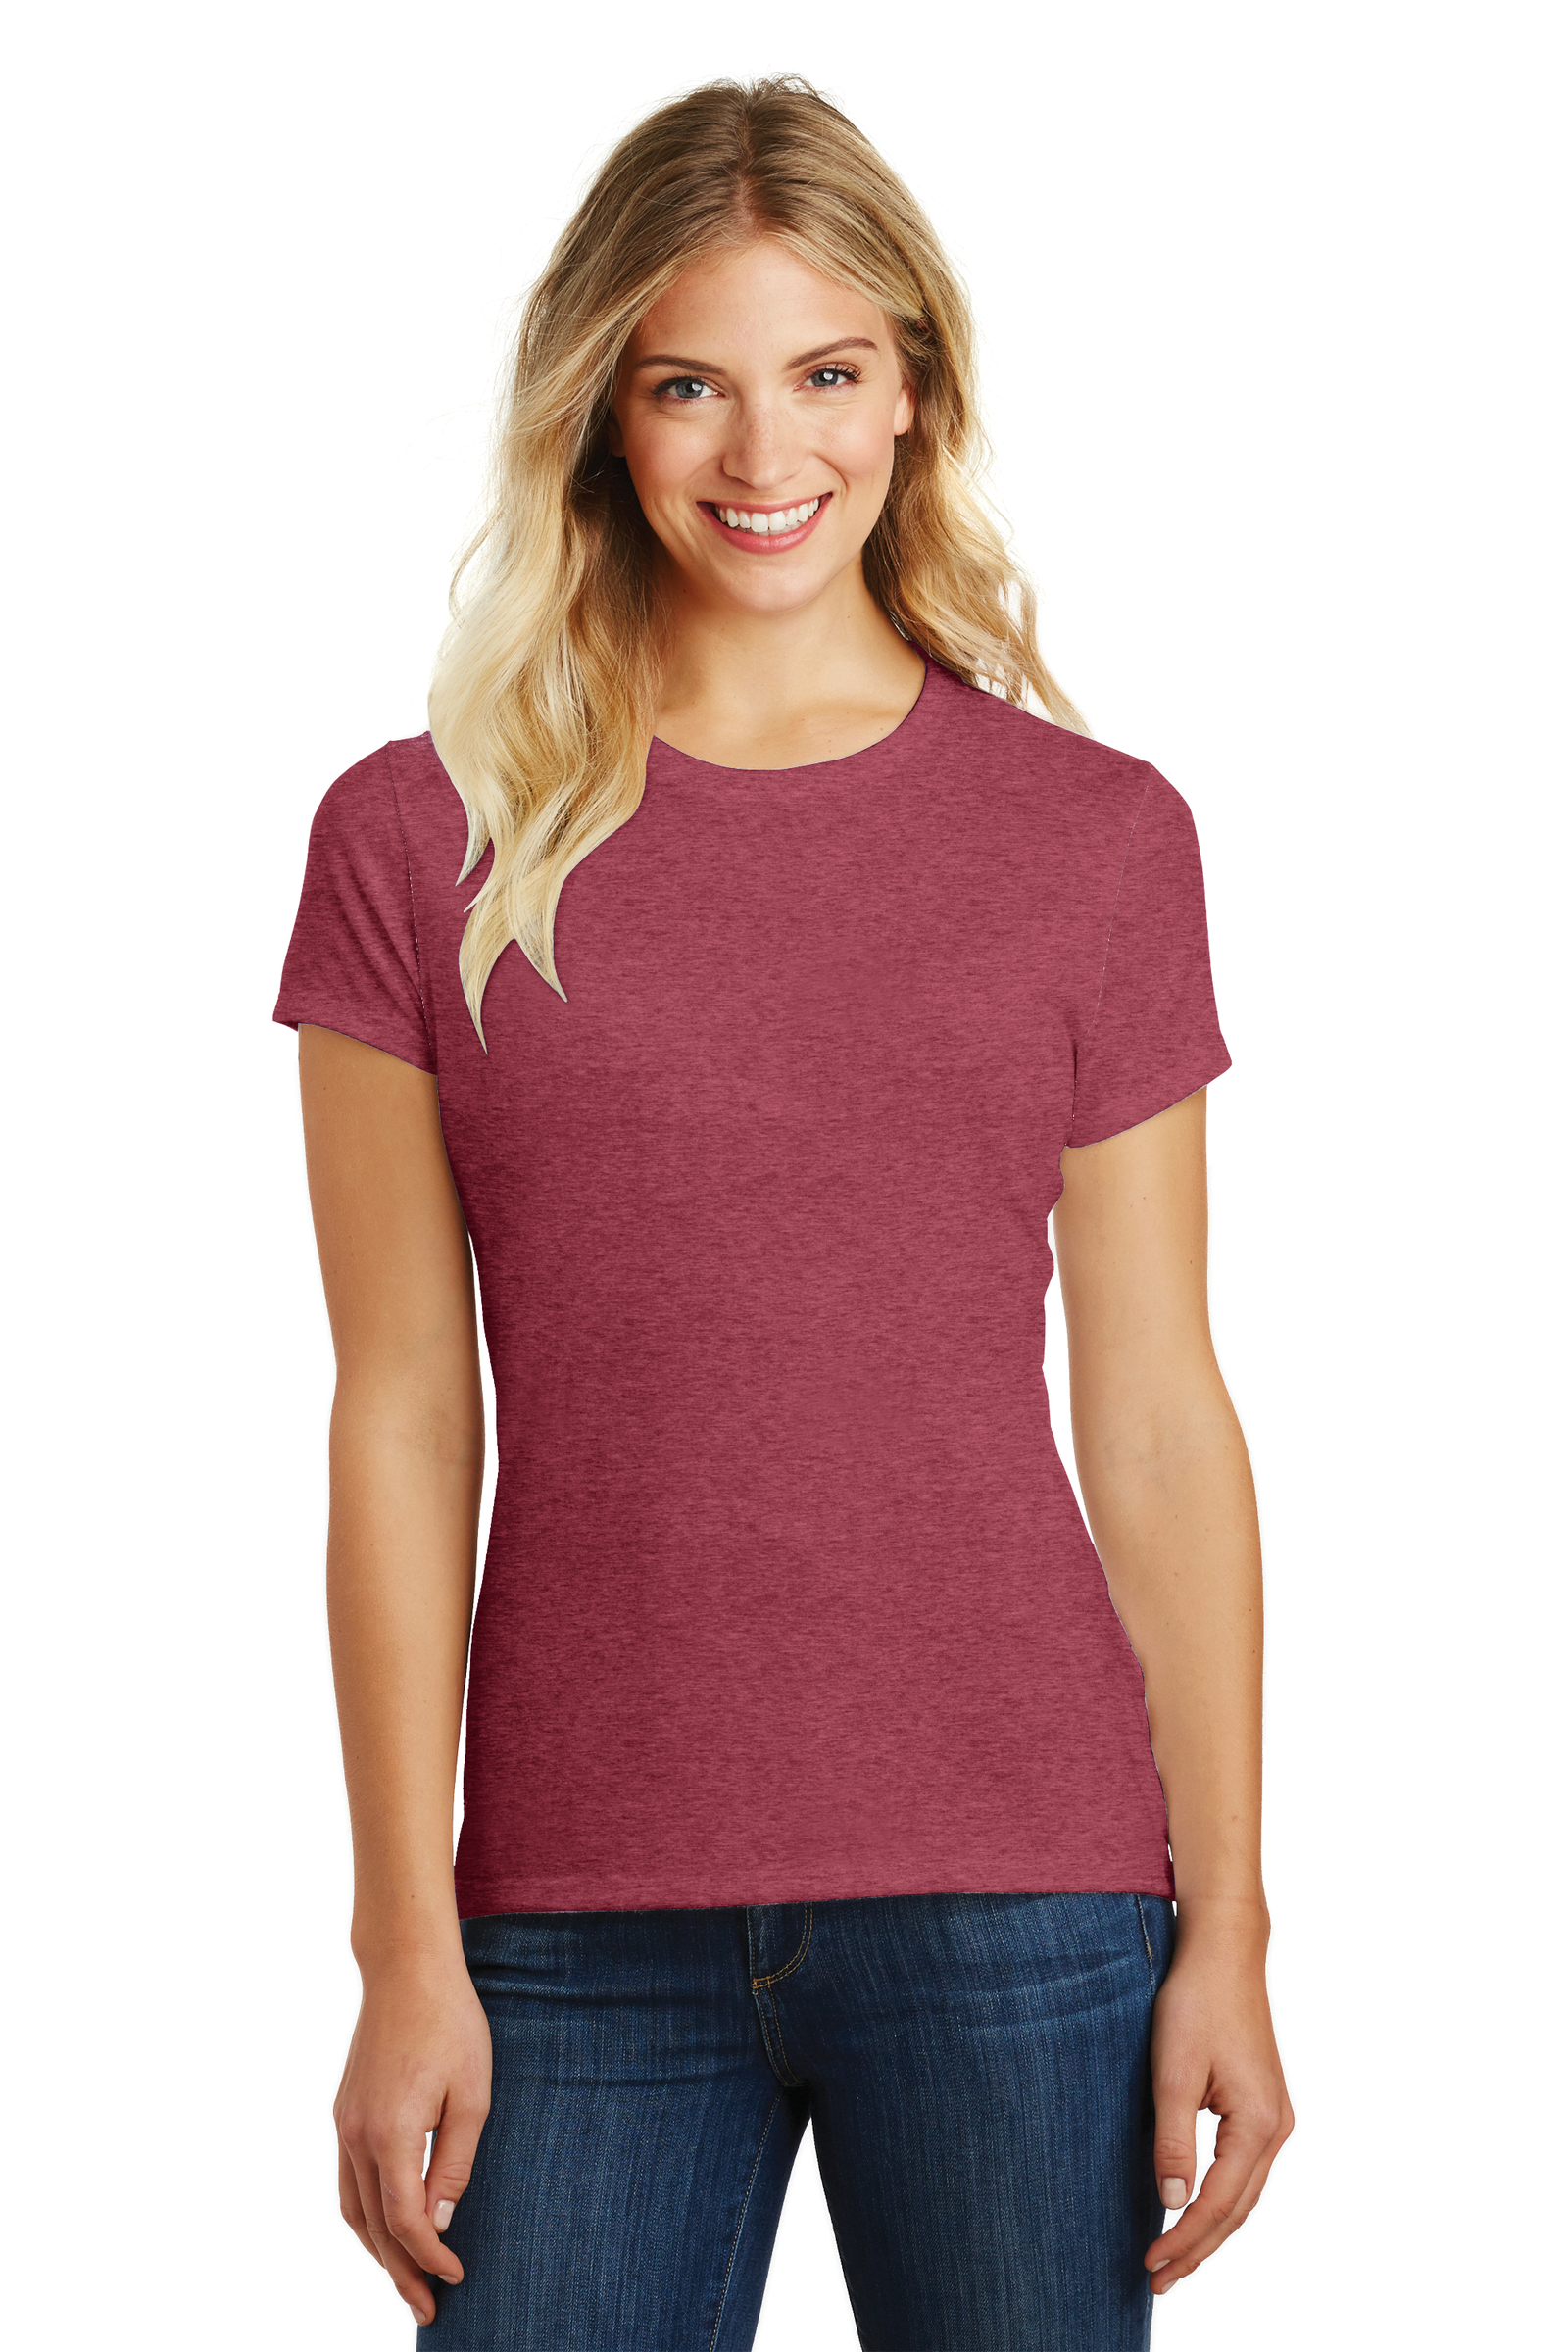 District Embroidered Women's Perfect Blend Tee